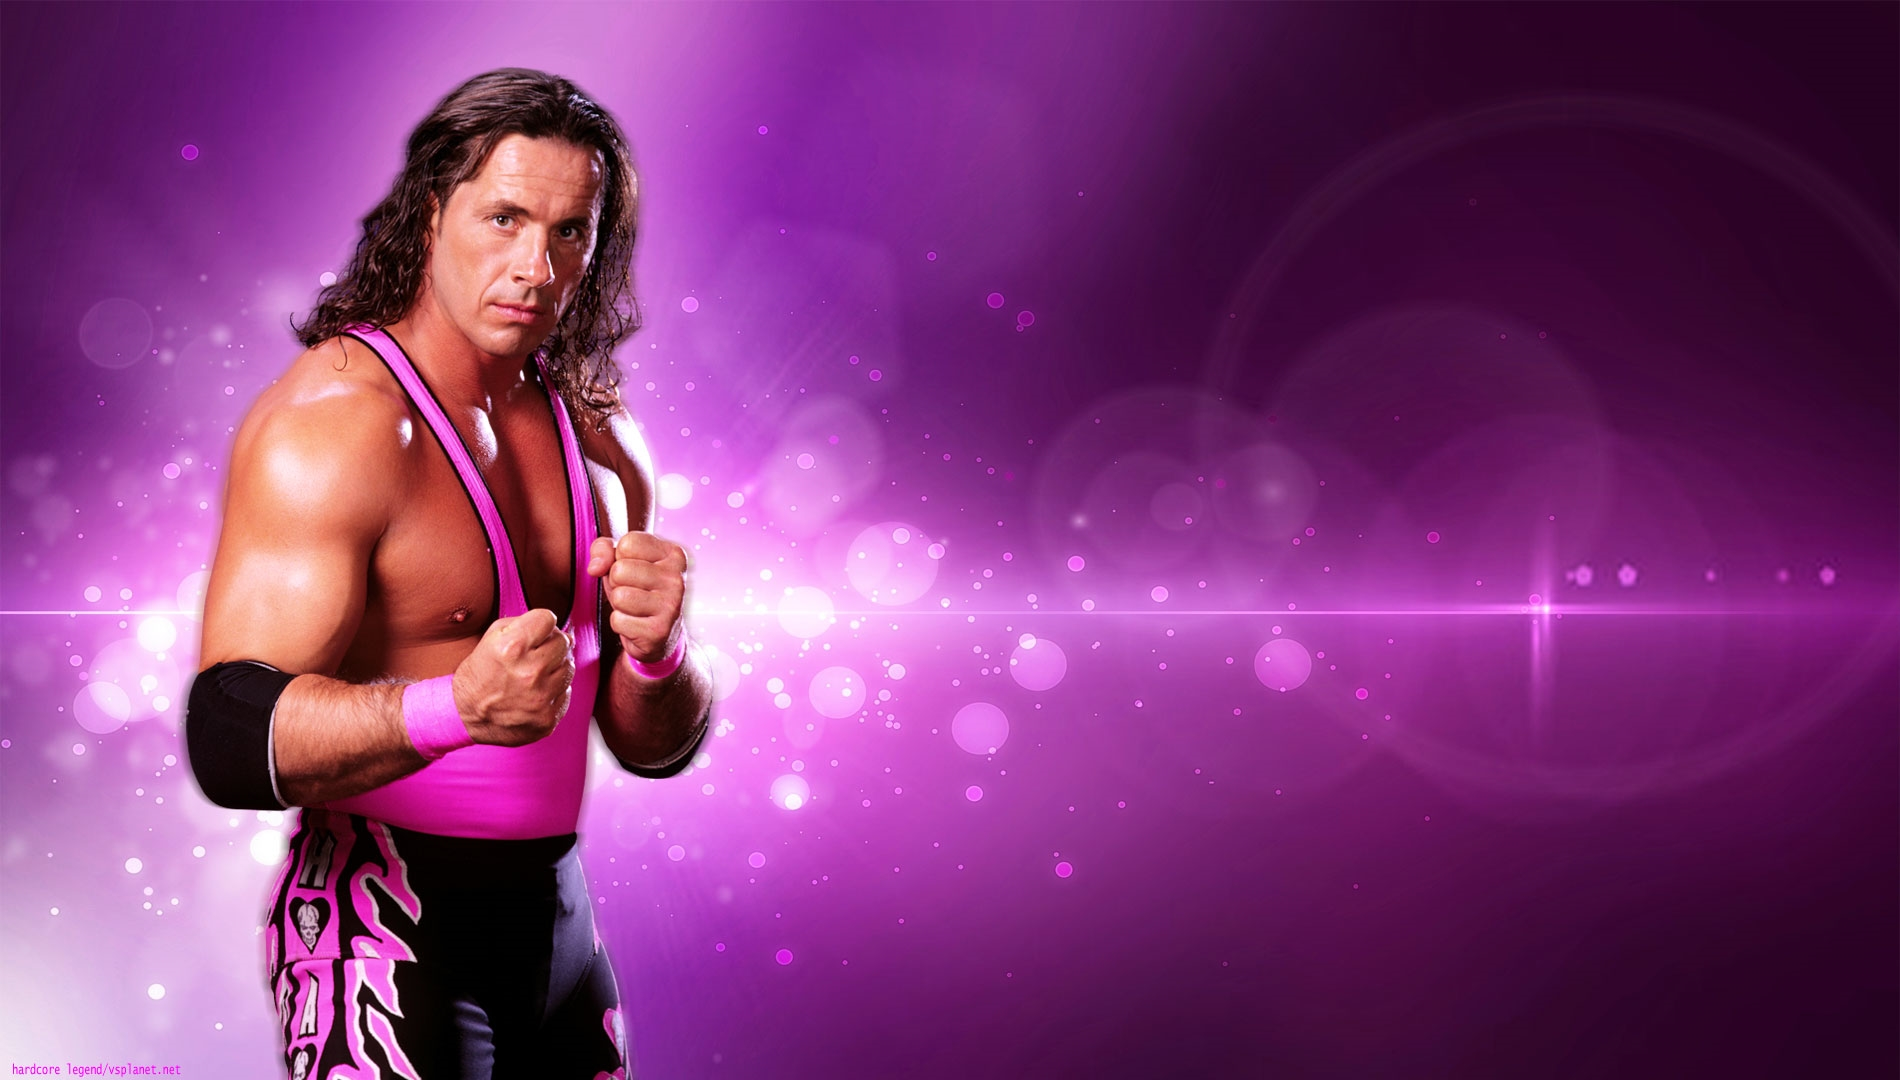 Pink Panther Wallpaper Hd Bret Hart Wallpapers Free Download